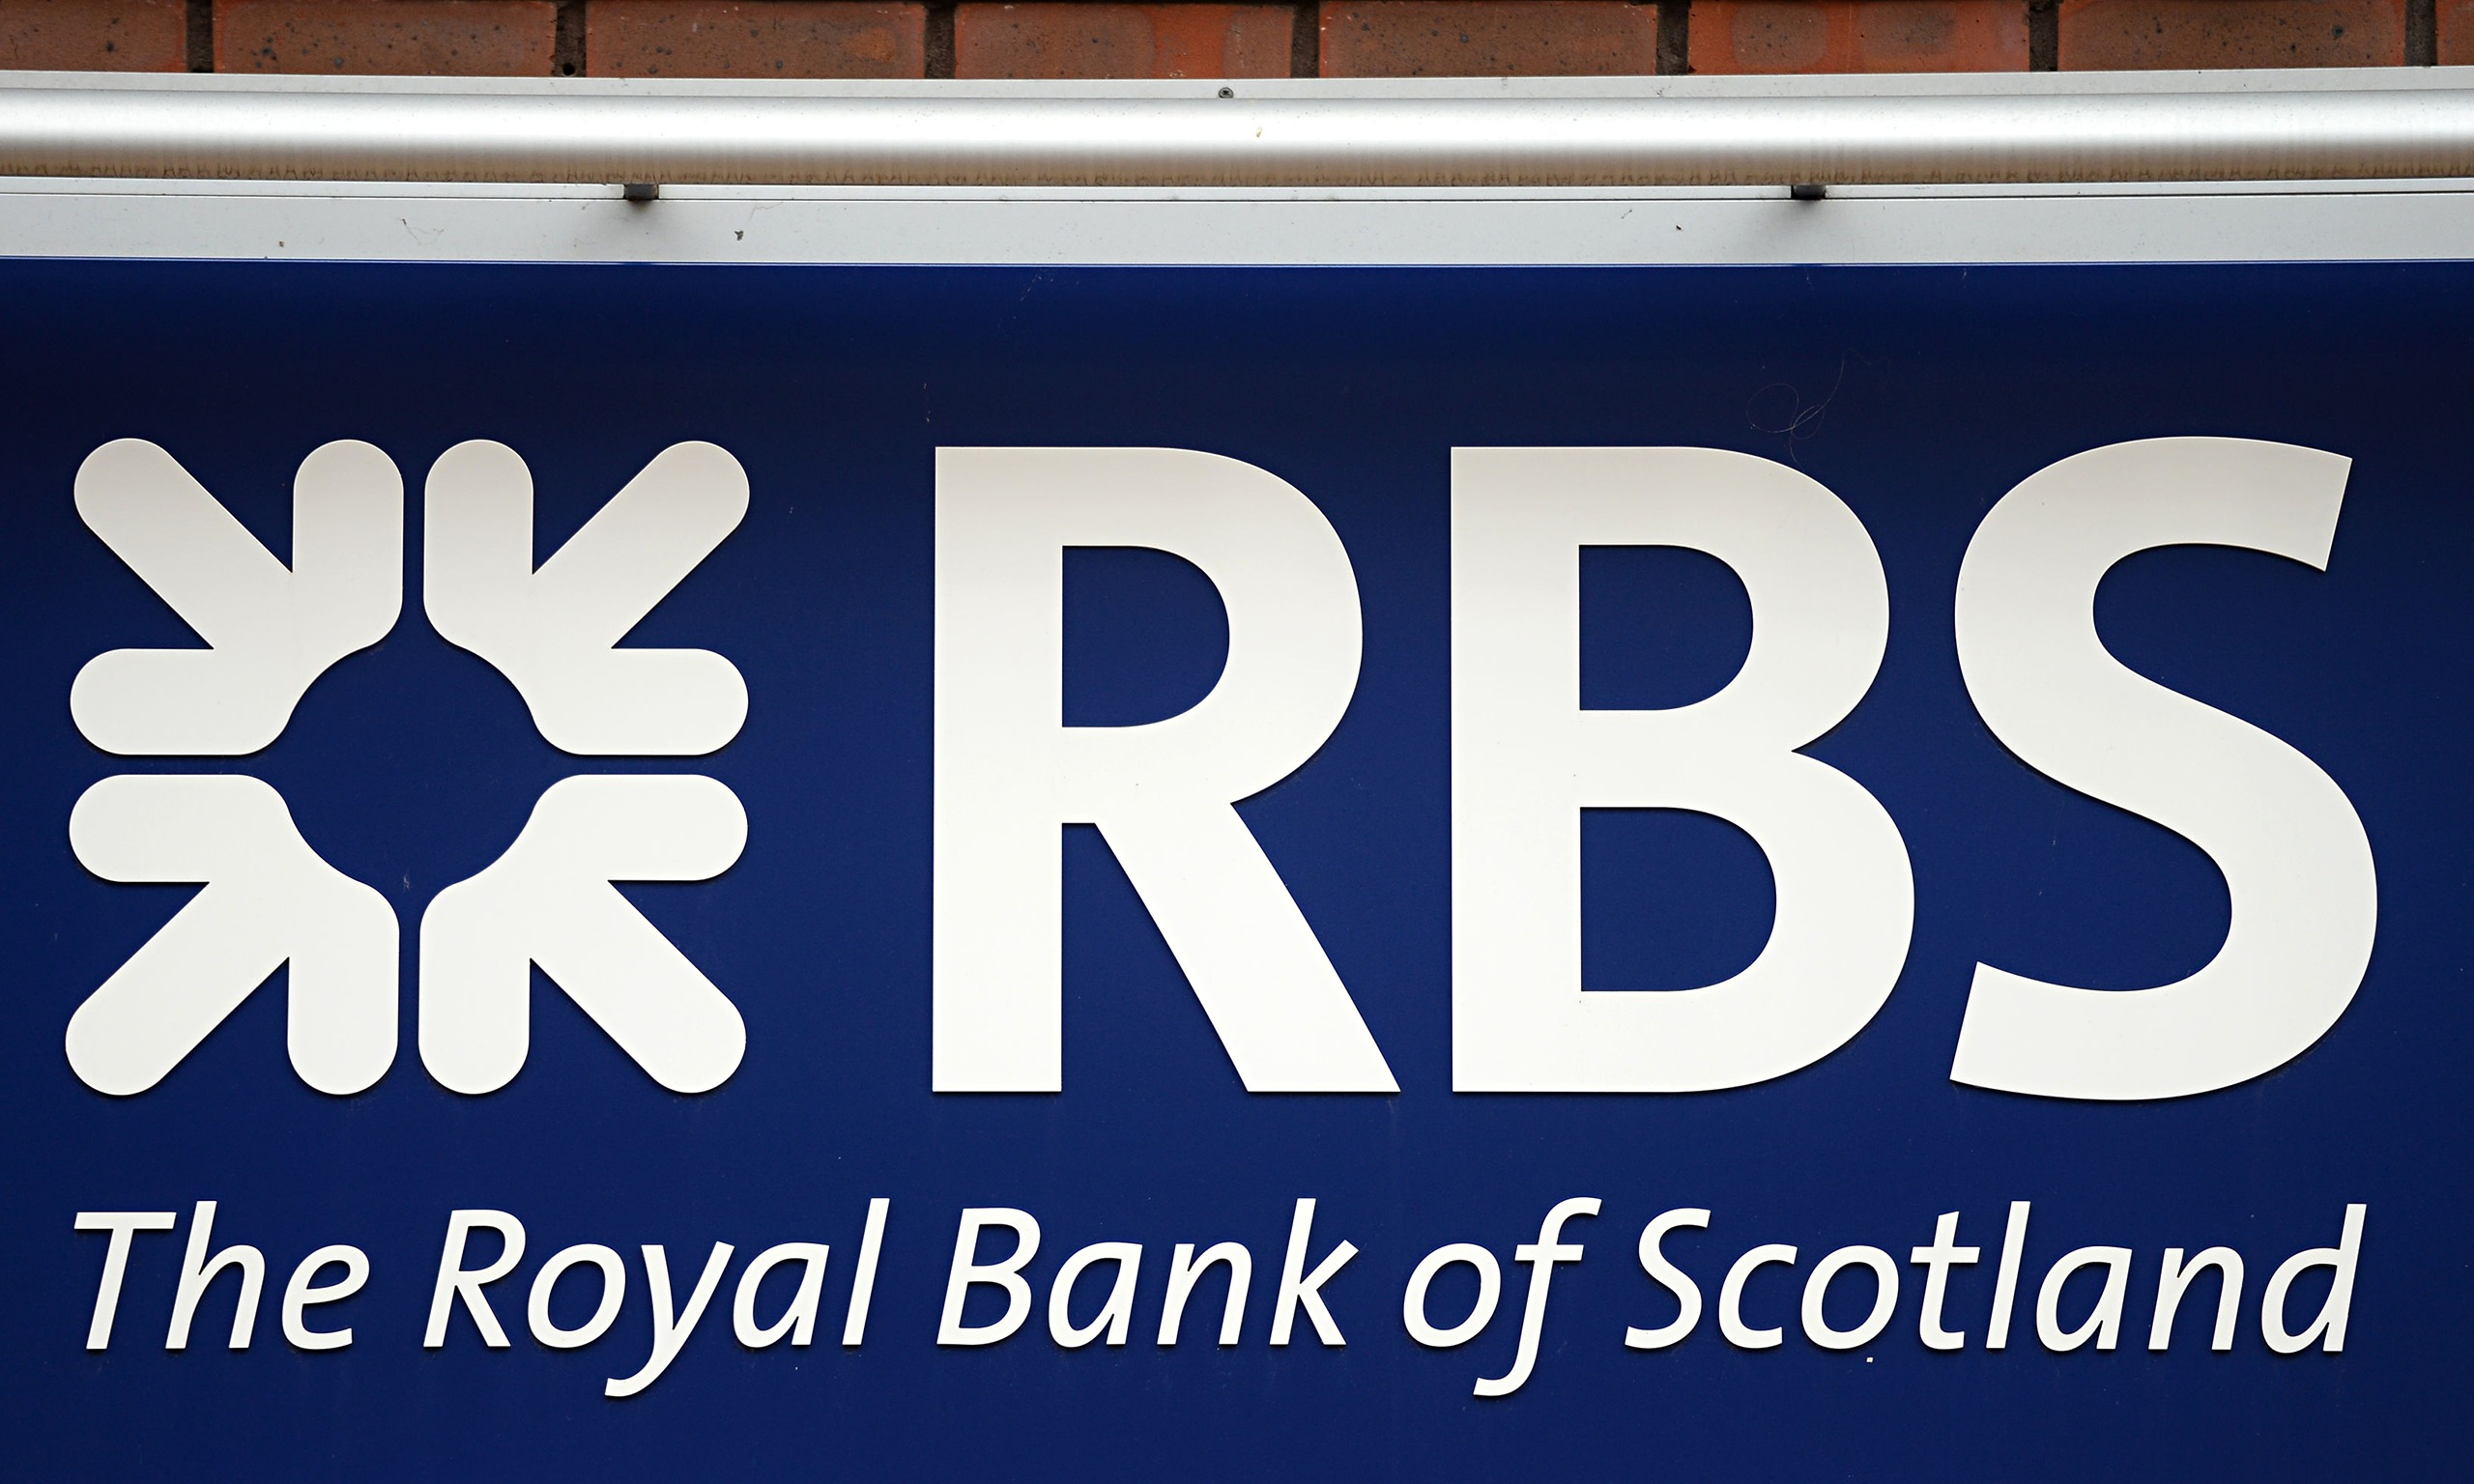 A surprise boost for RBS, but let's not bet the (mortgaged) ranch